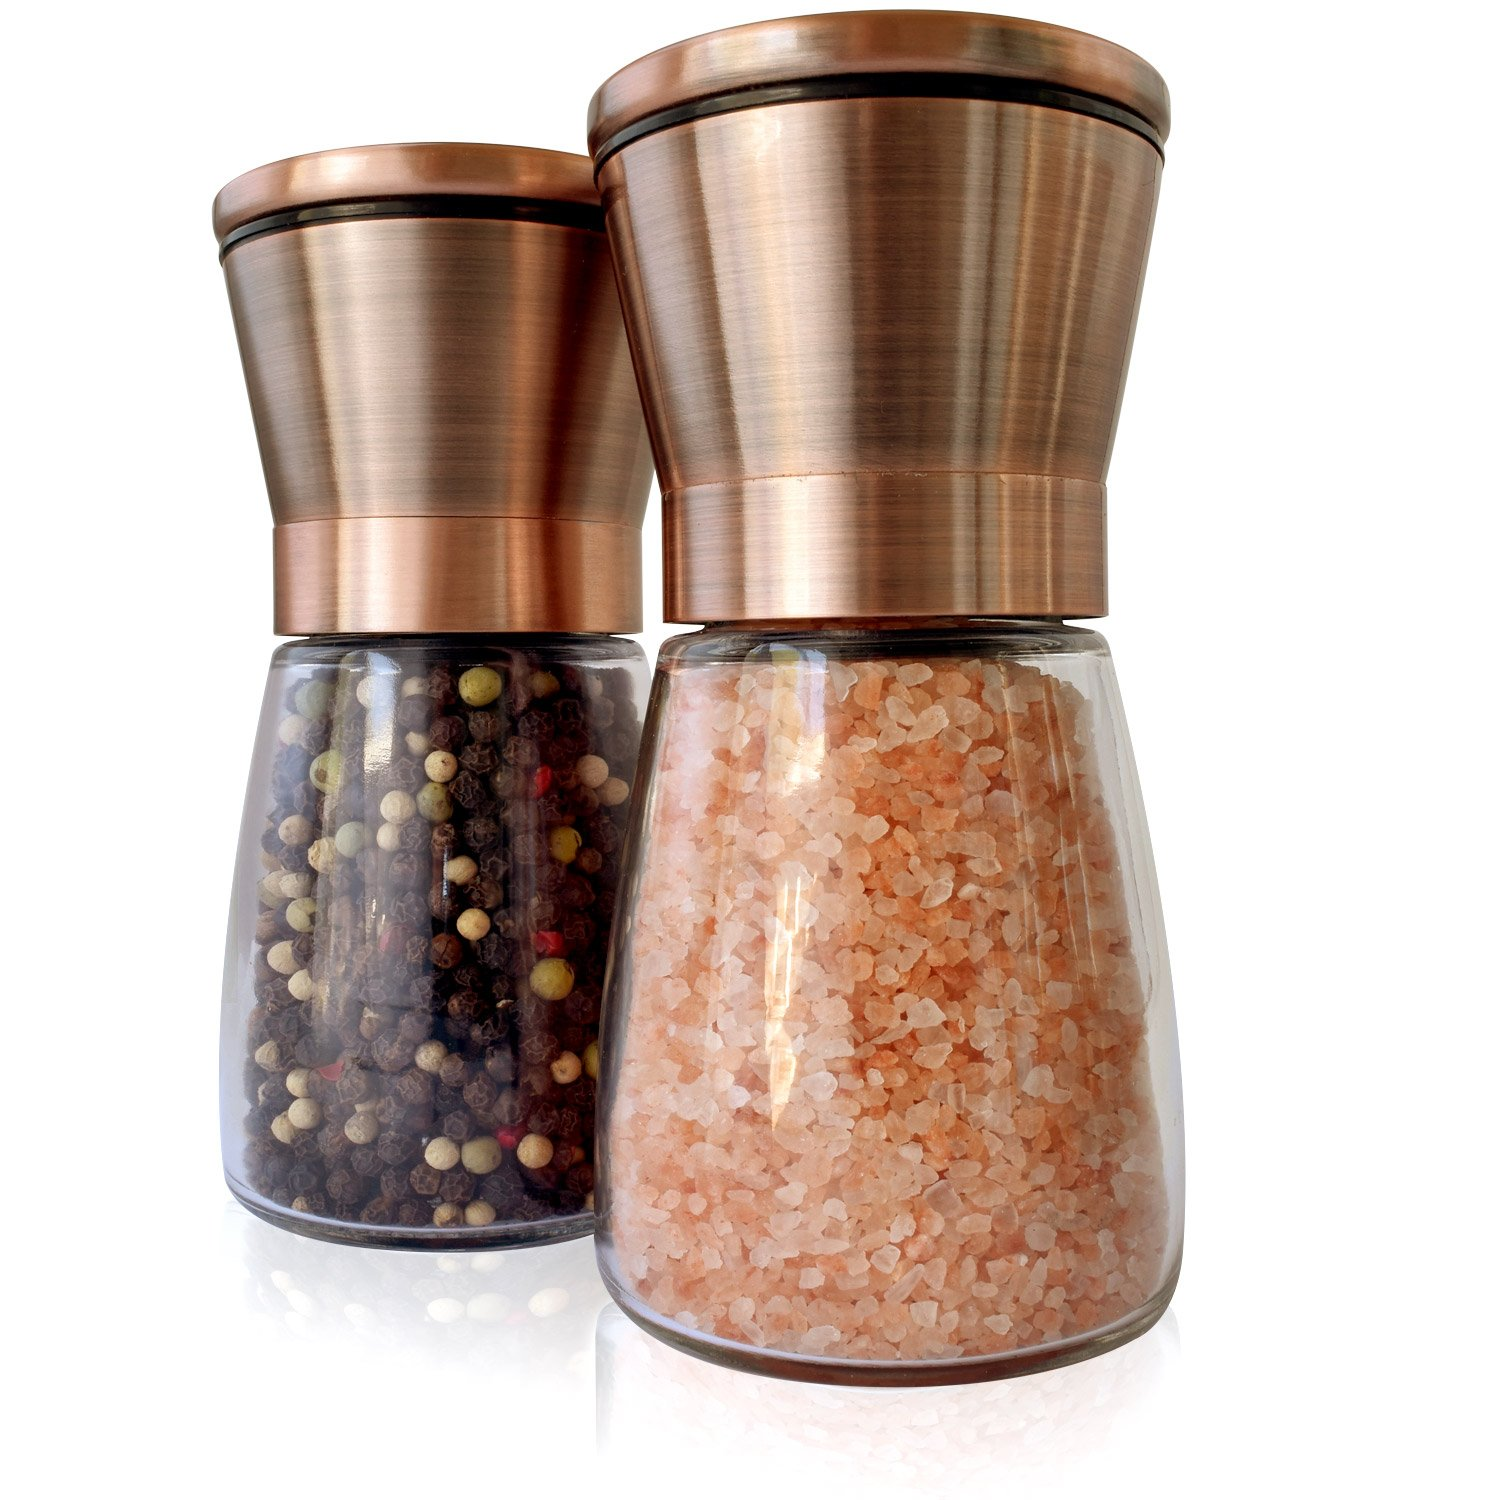 Premium Salt & Pepper Grinder Set | Brushed Copper, 18/8 Stainless Steel Lids and Glass Shakers, Set of 2 | Grinder/Mill with Adjustable Coarseness | by Premium Home Quality (6oz)